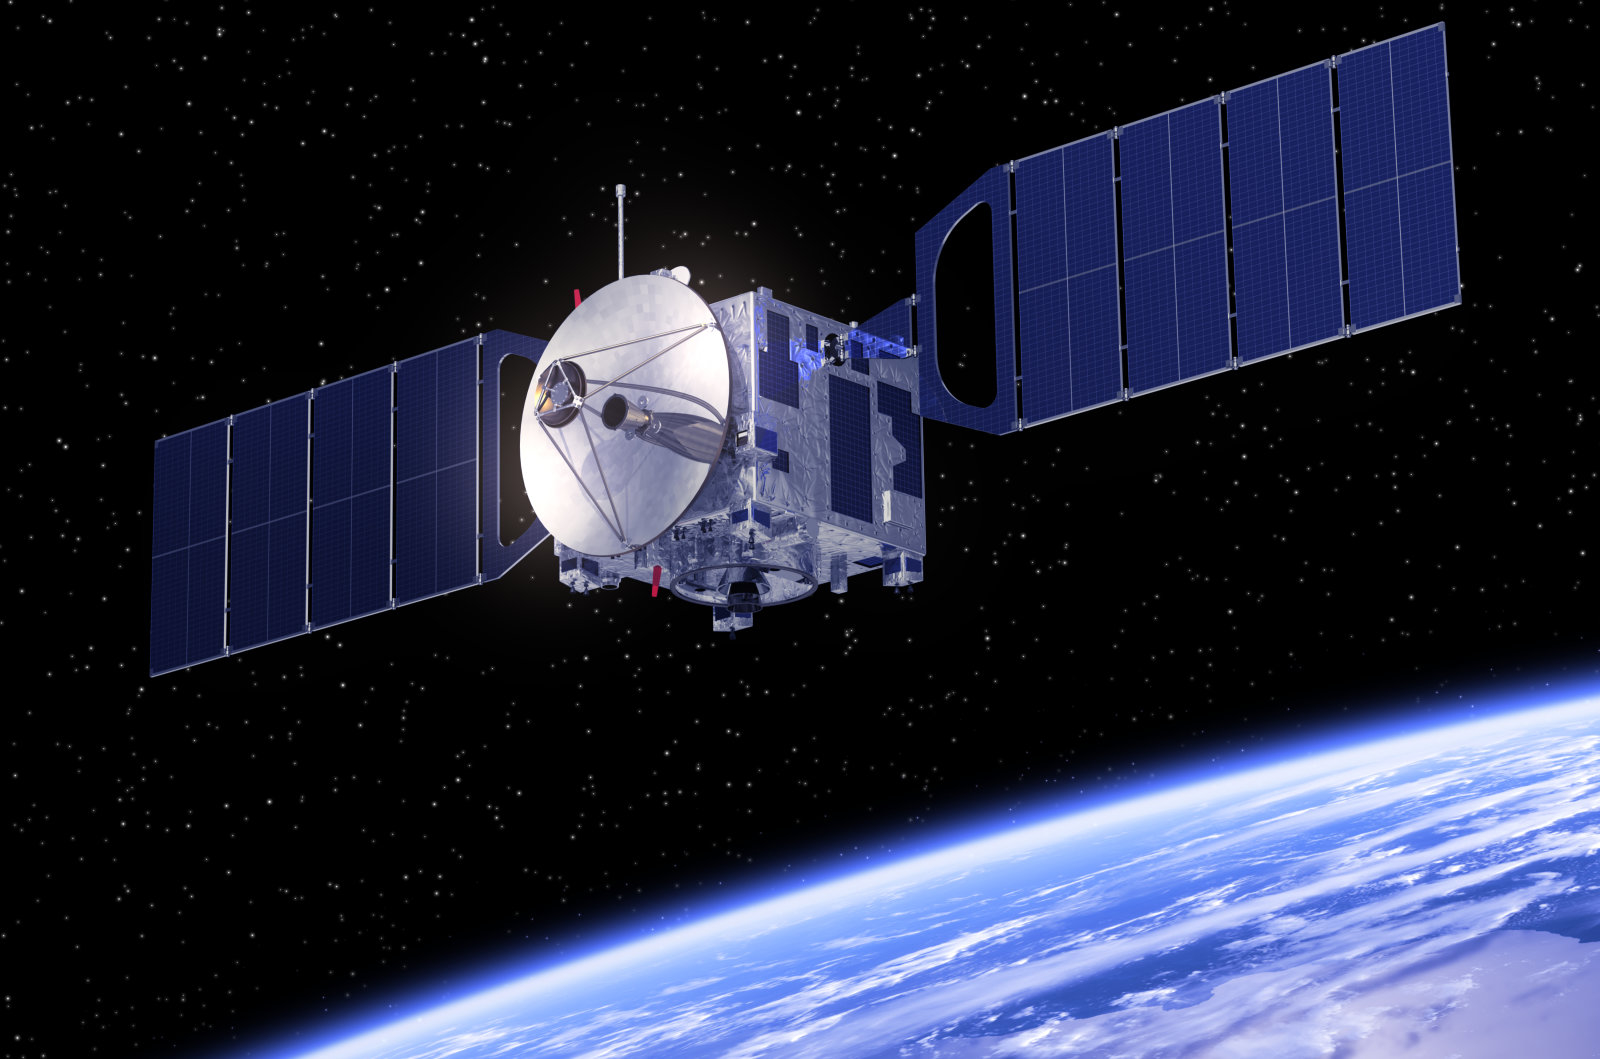 Satellite Orbiting Earth. 3D Scene. Elements of this image furnished by NASA.